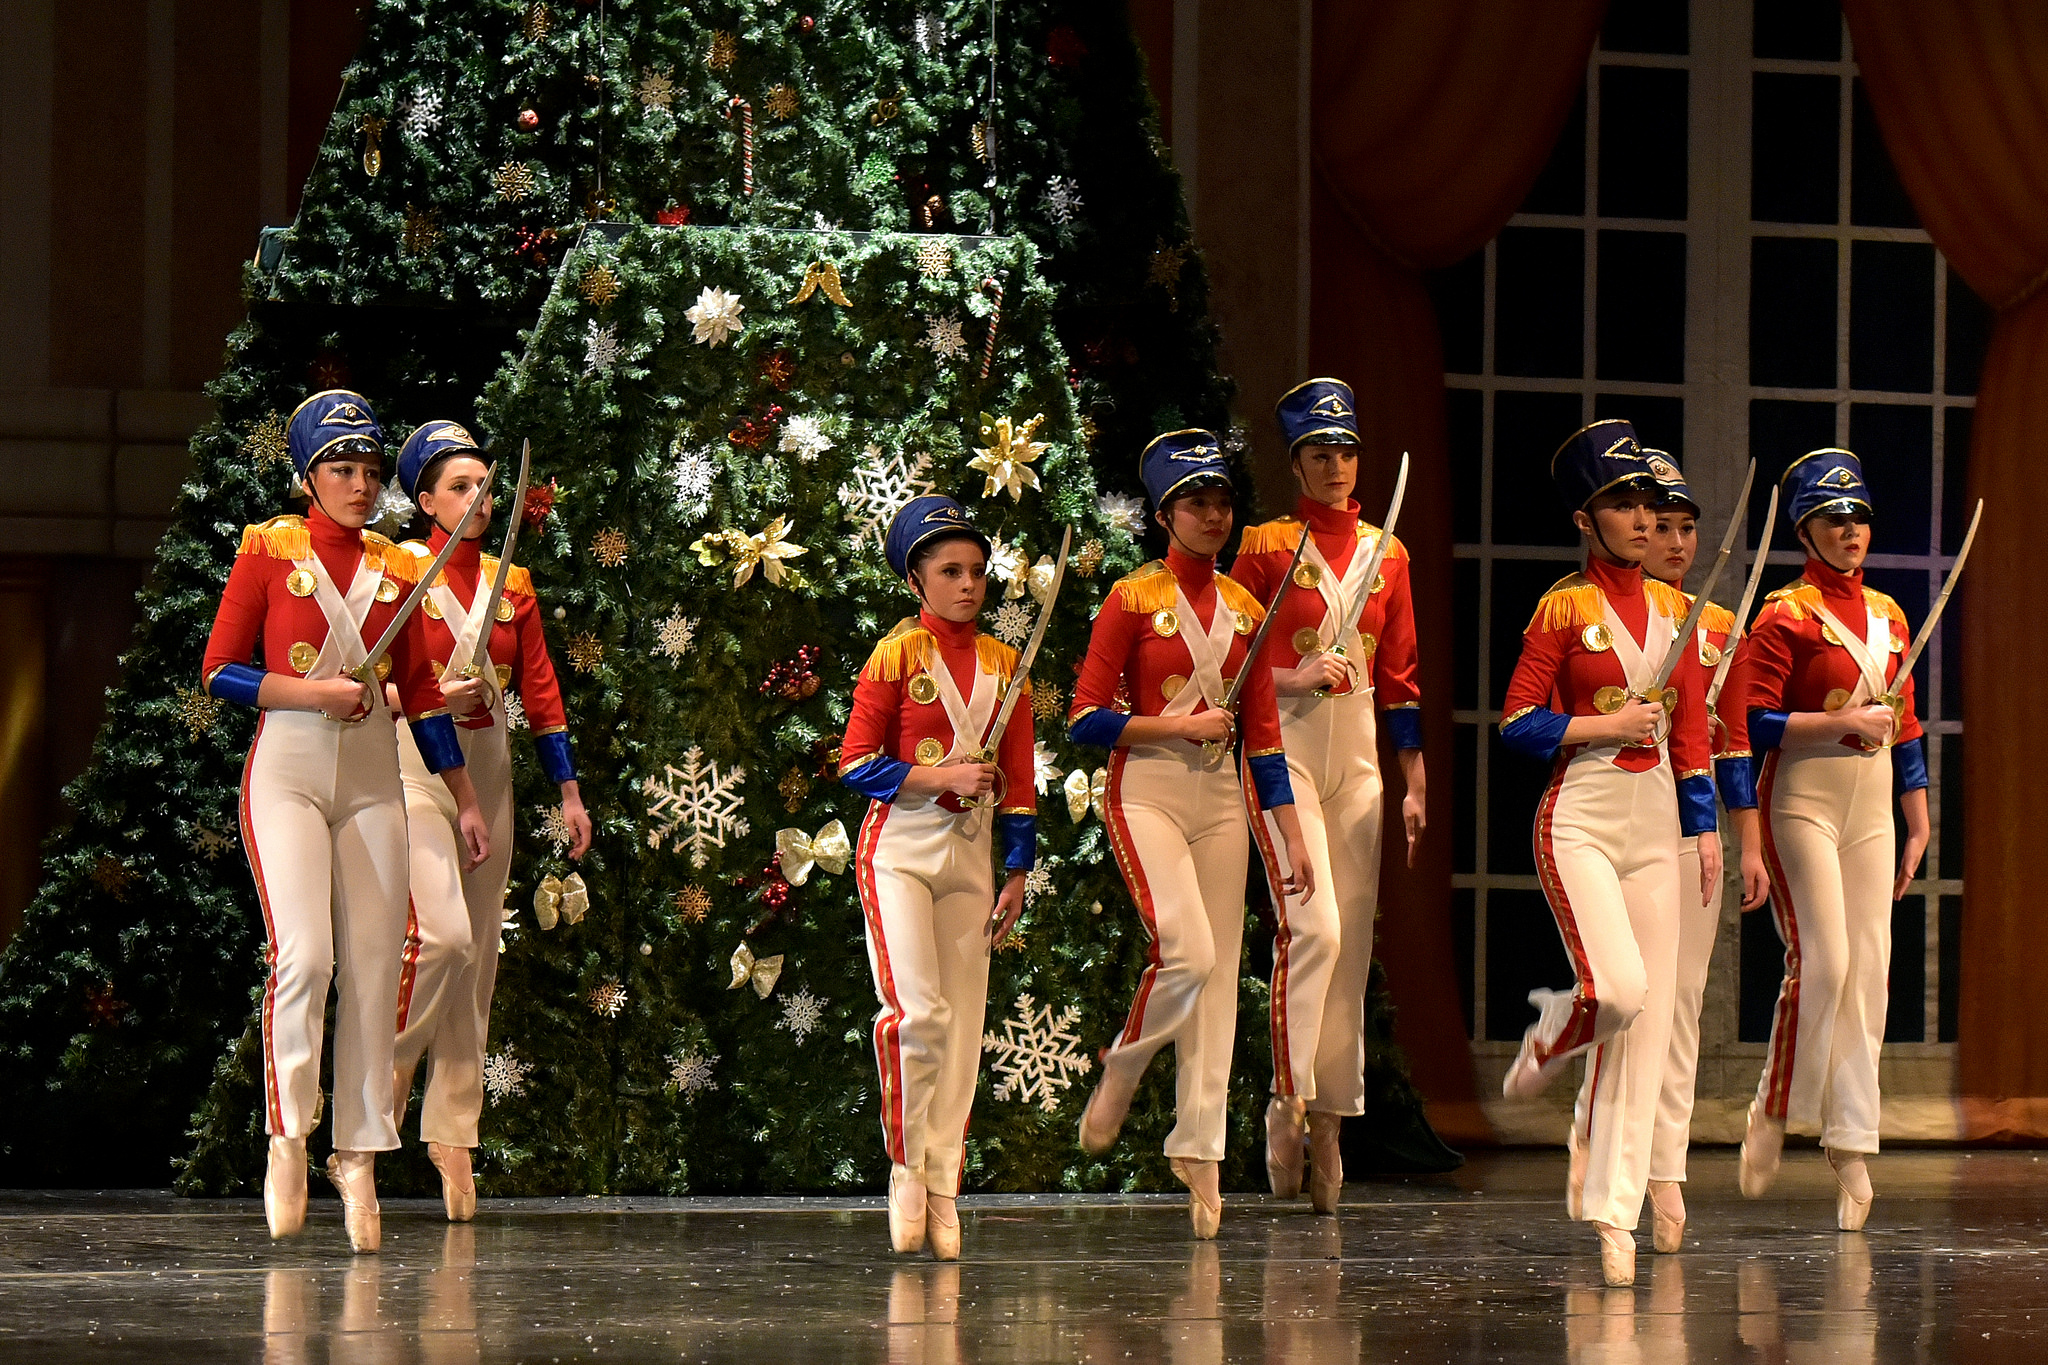 holiday soldiers dance in front of christmas tree for holiday performance